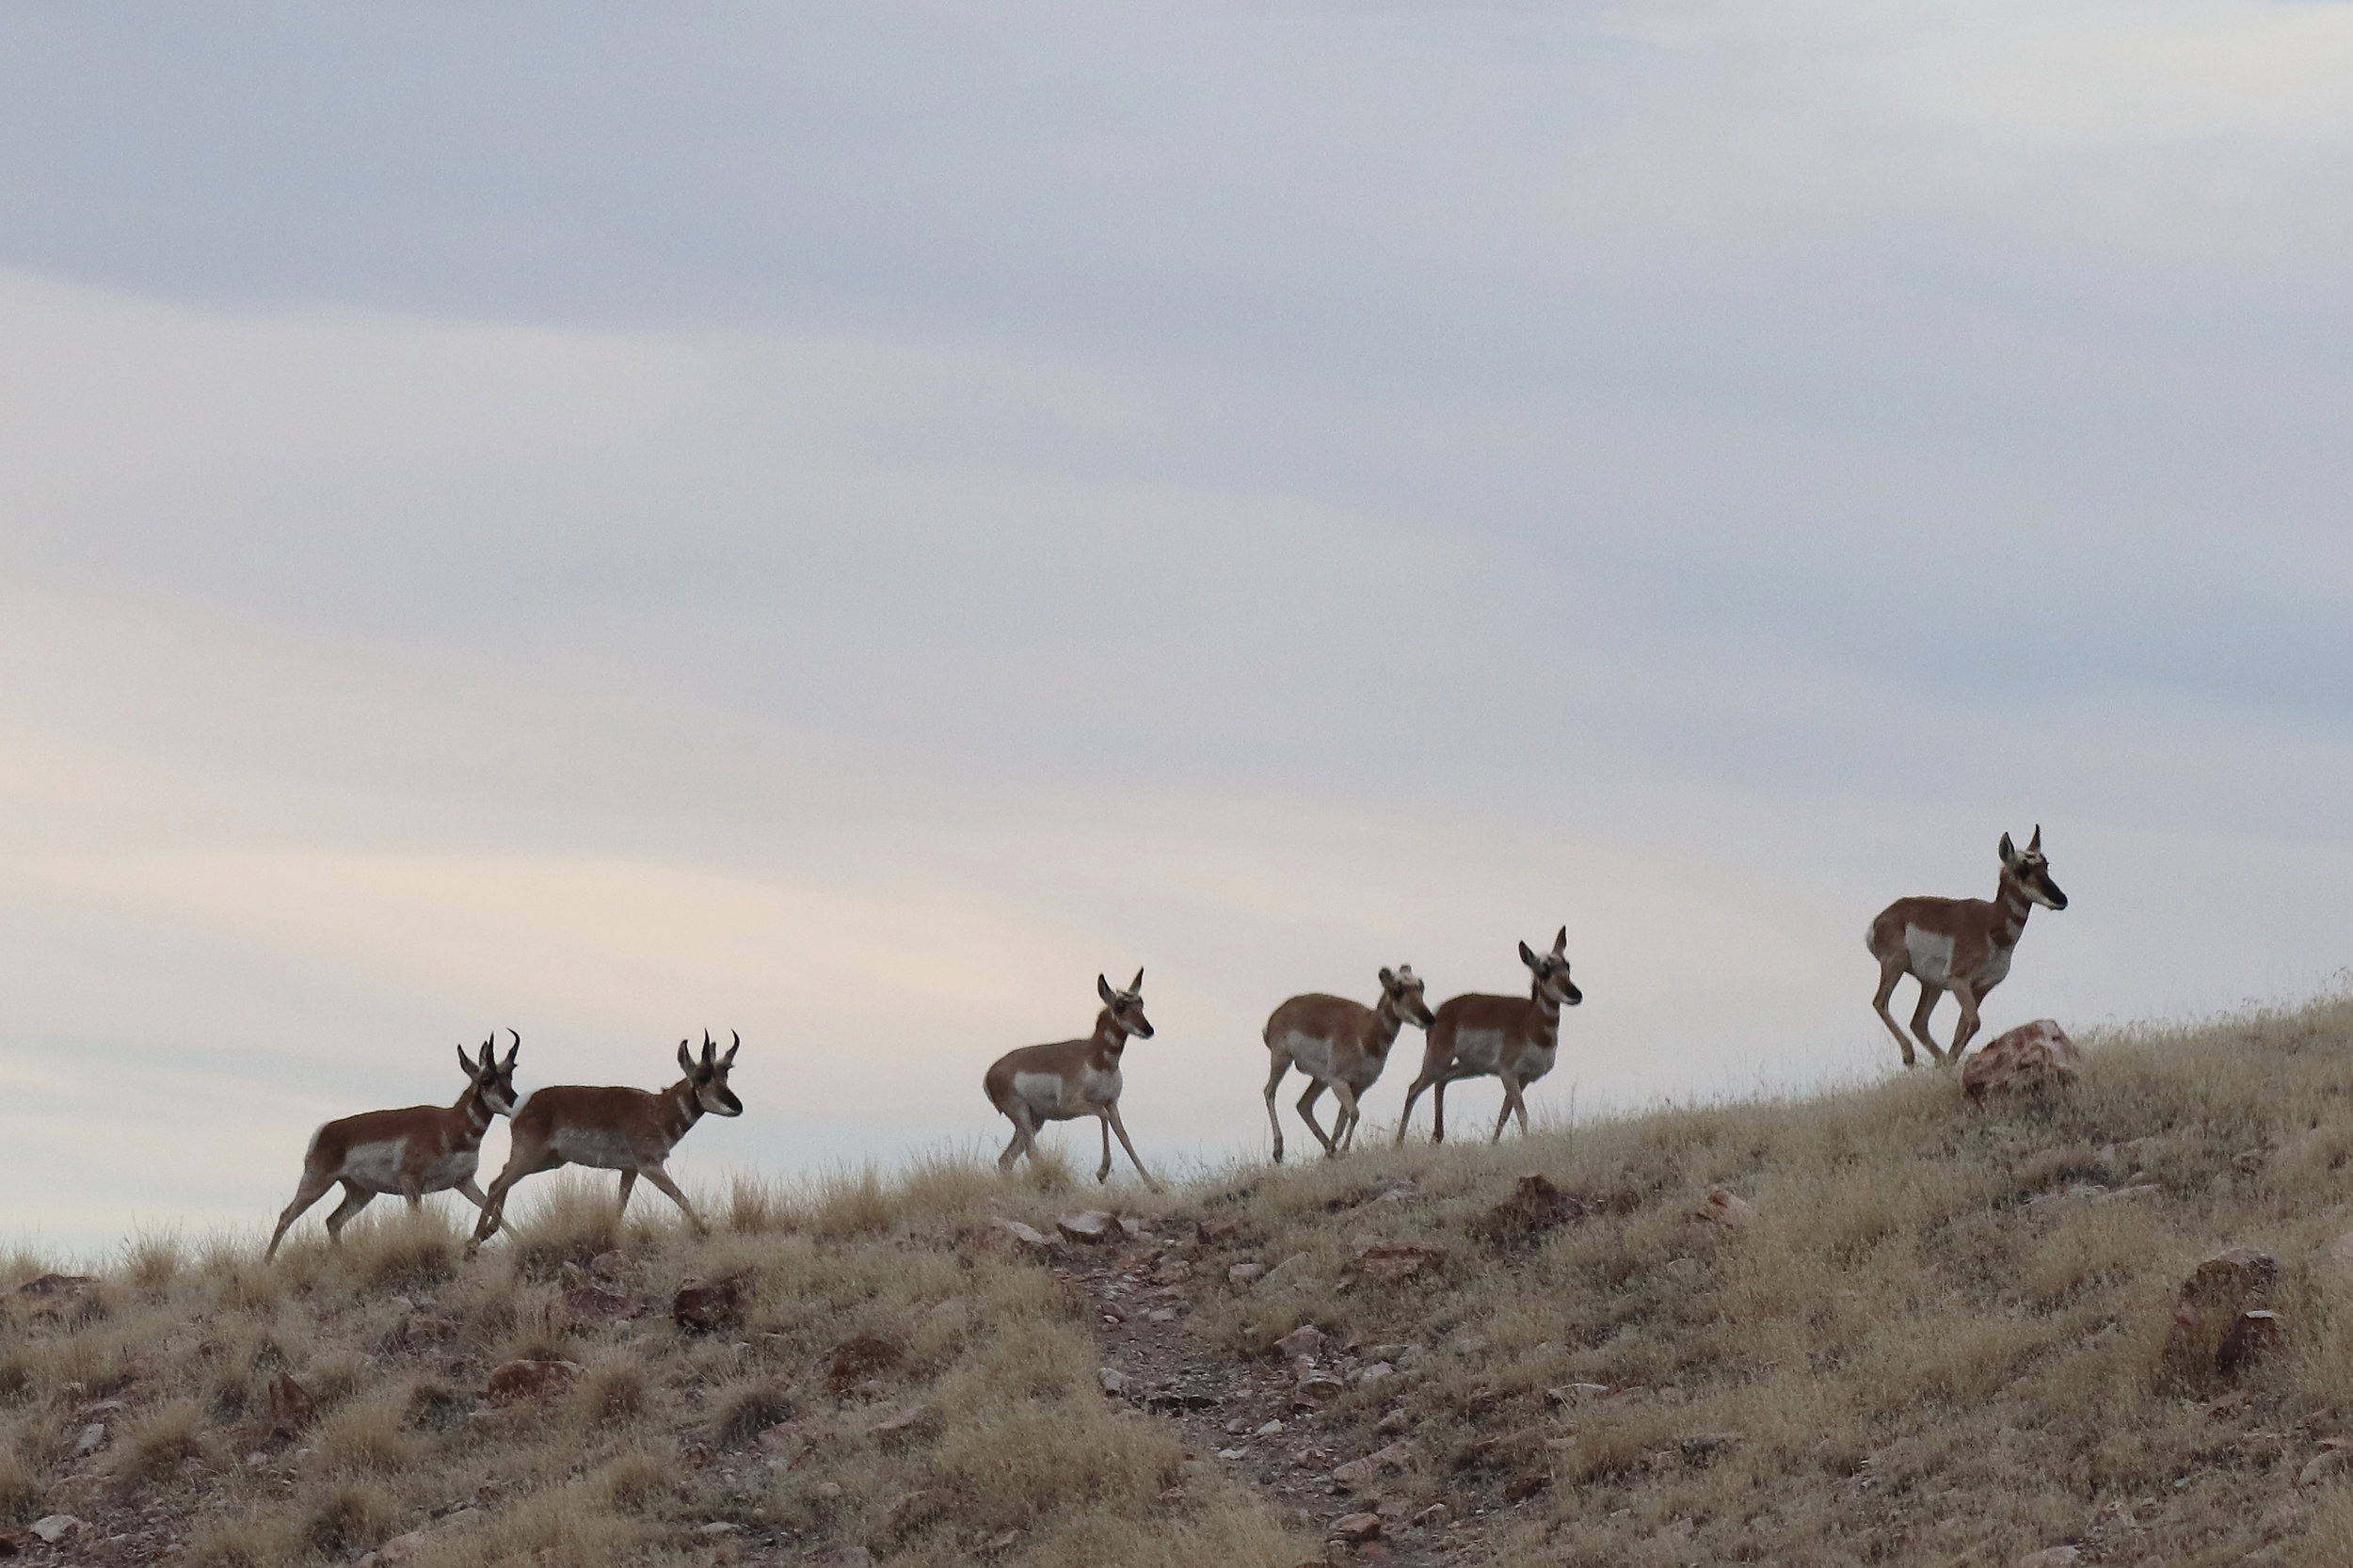 Pronghorns in the Davis Mtn foothills